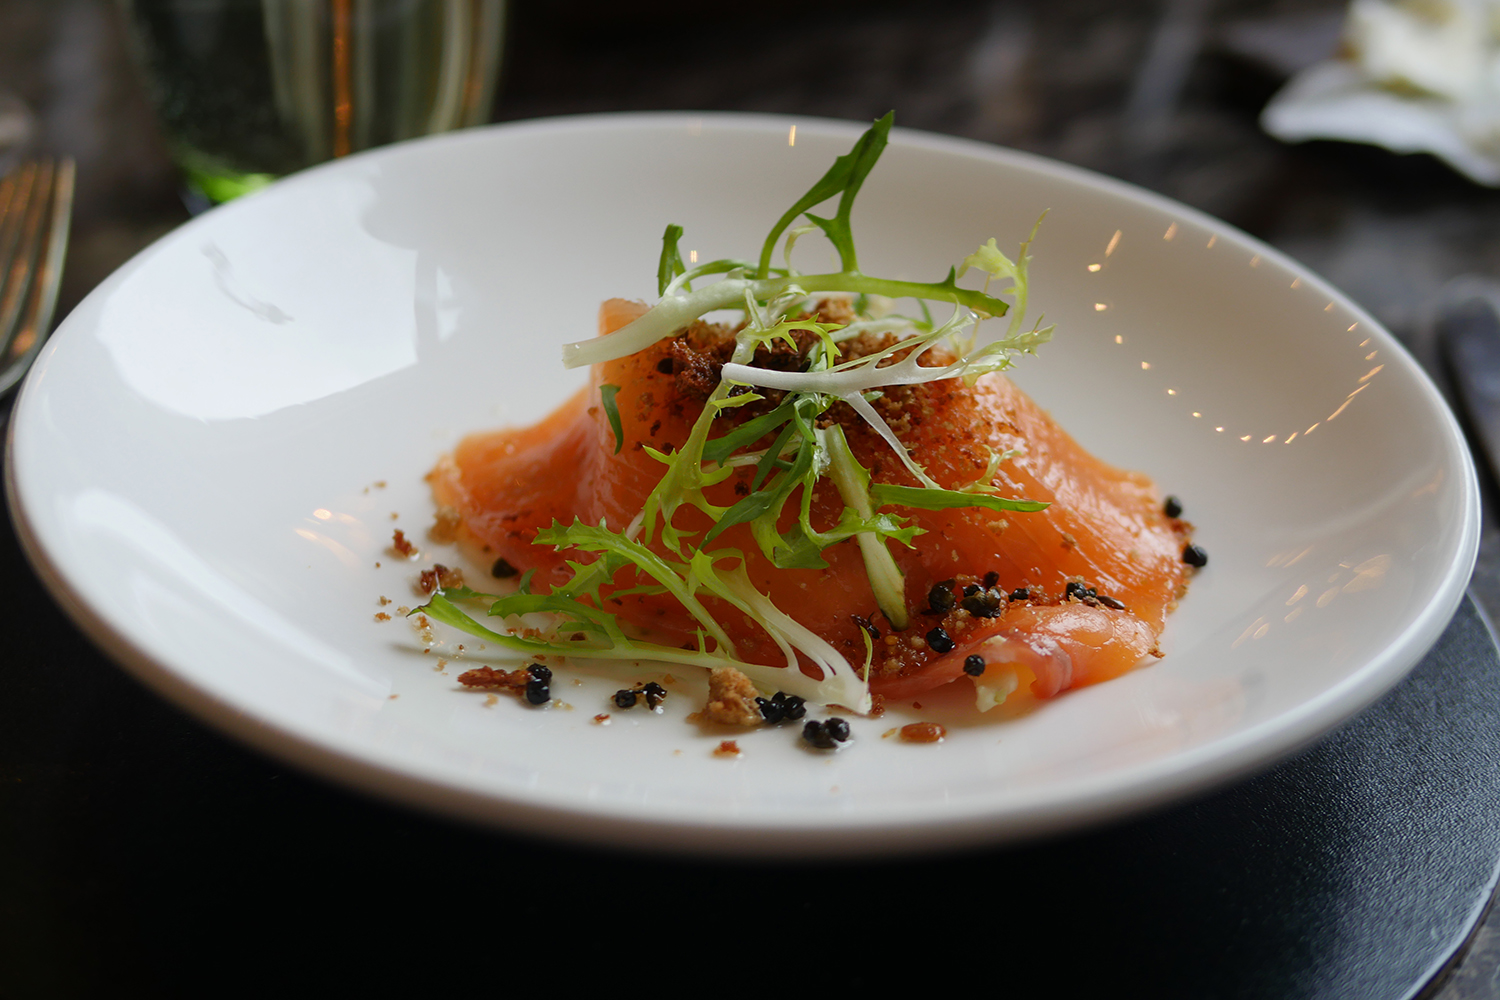 Balcon Restaurant Sofitel London St James -smoked salmon